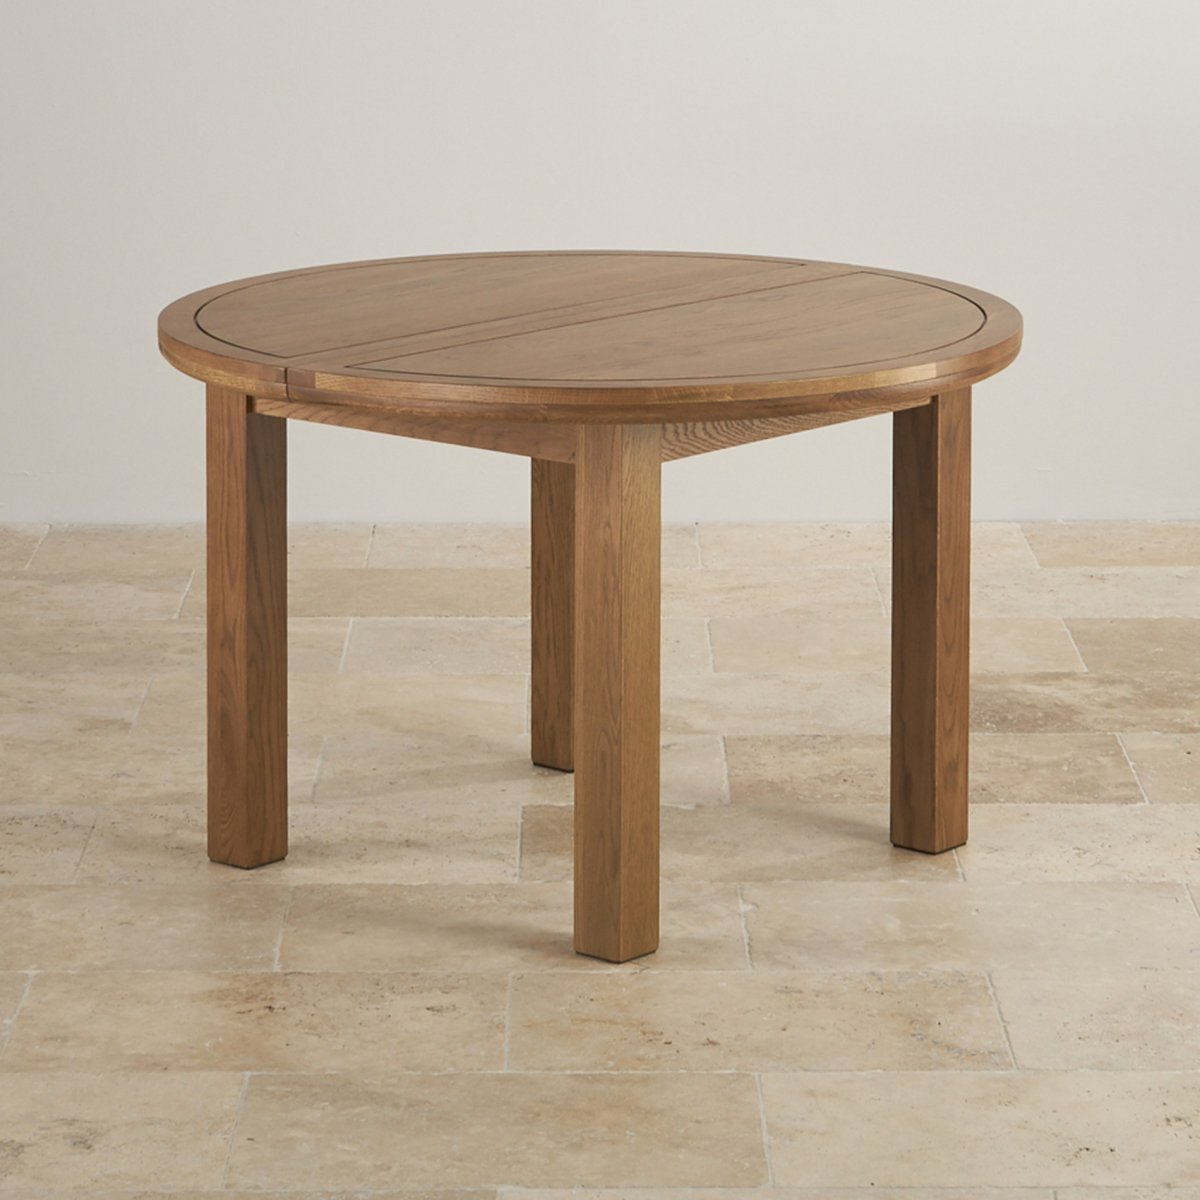 Round Extending Dining Table In Rustic Oak Oak Furniture